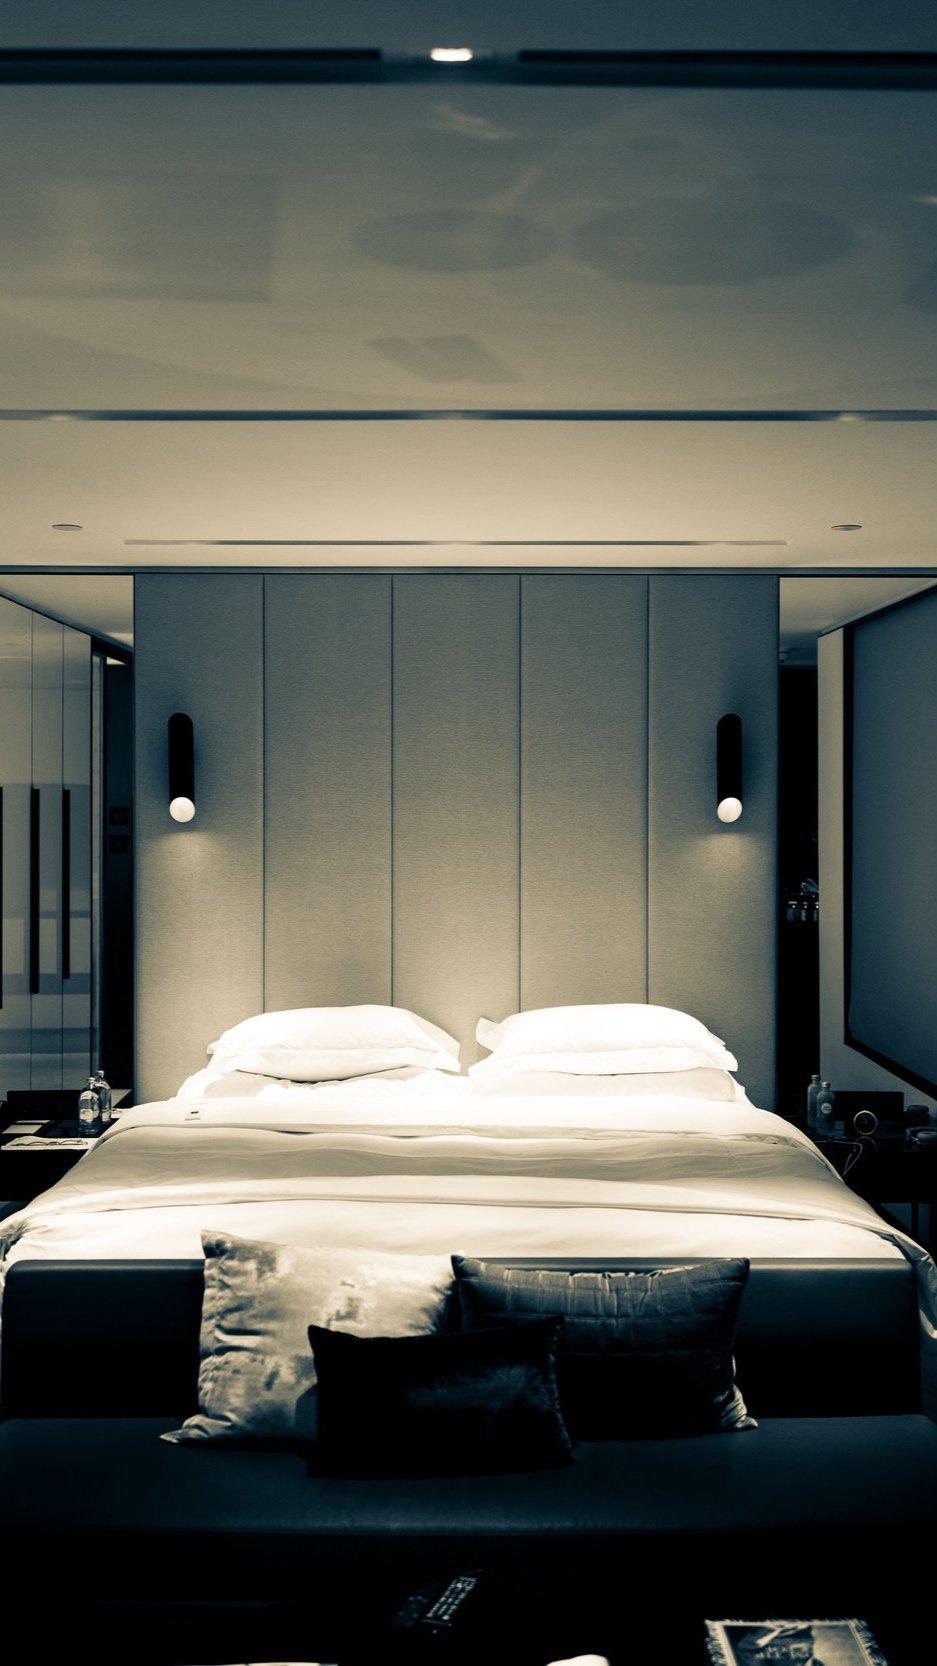 A bed in a luxury hotel room